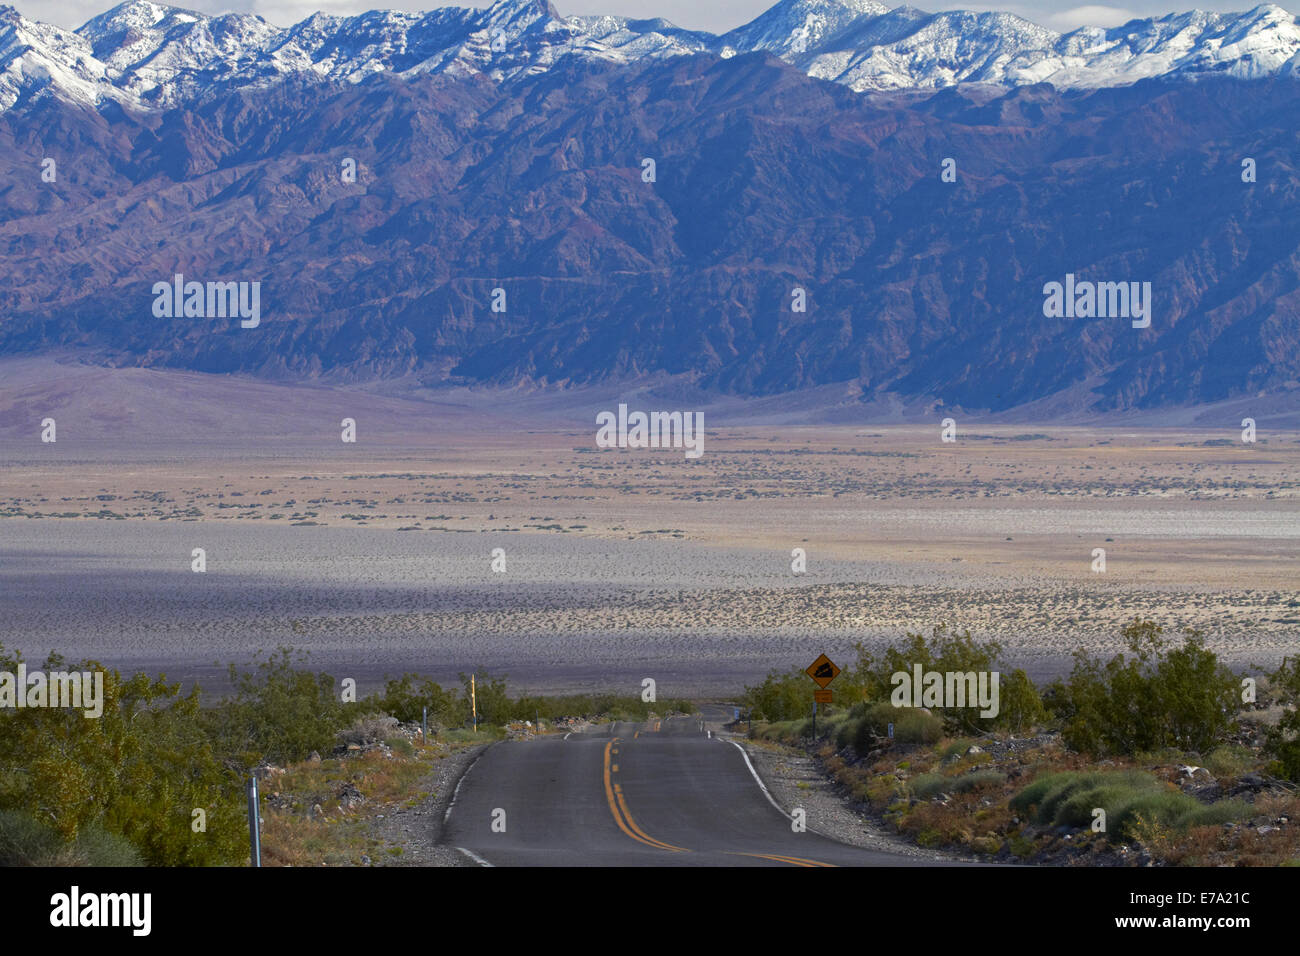 State Route 190 climbing up from Death Valley over Panamint Range, with snowy Grapevine Mountains in background, Stock Photo